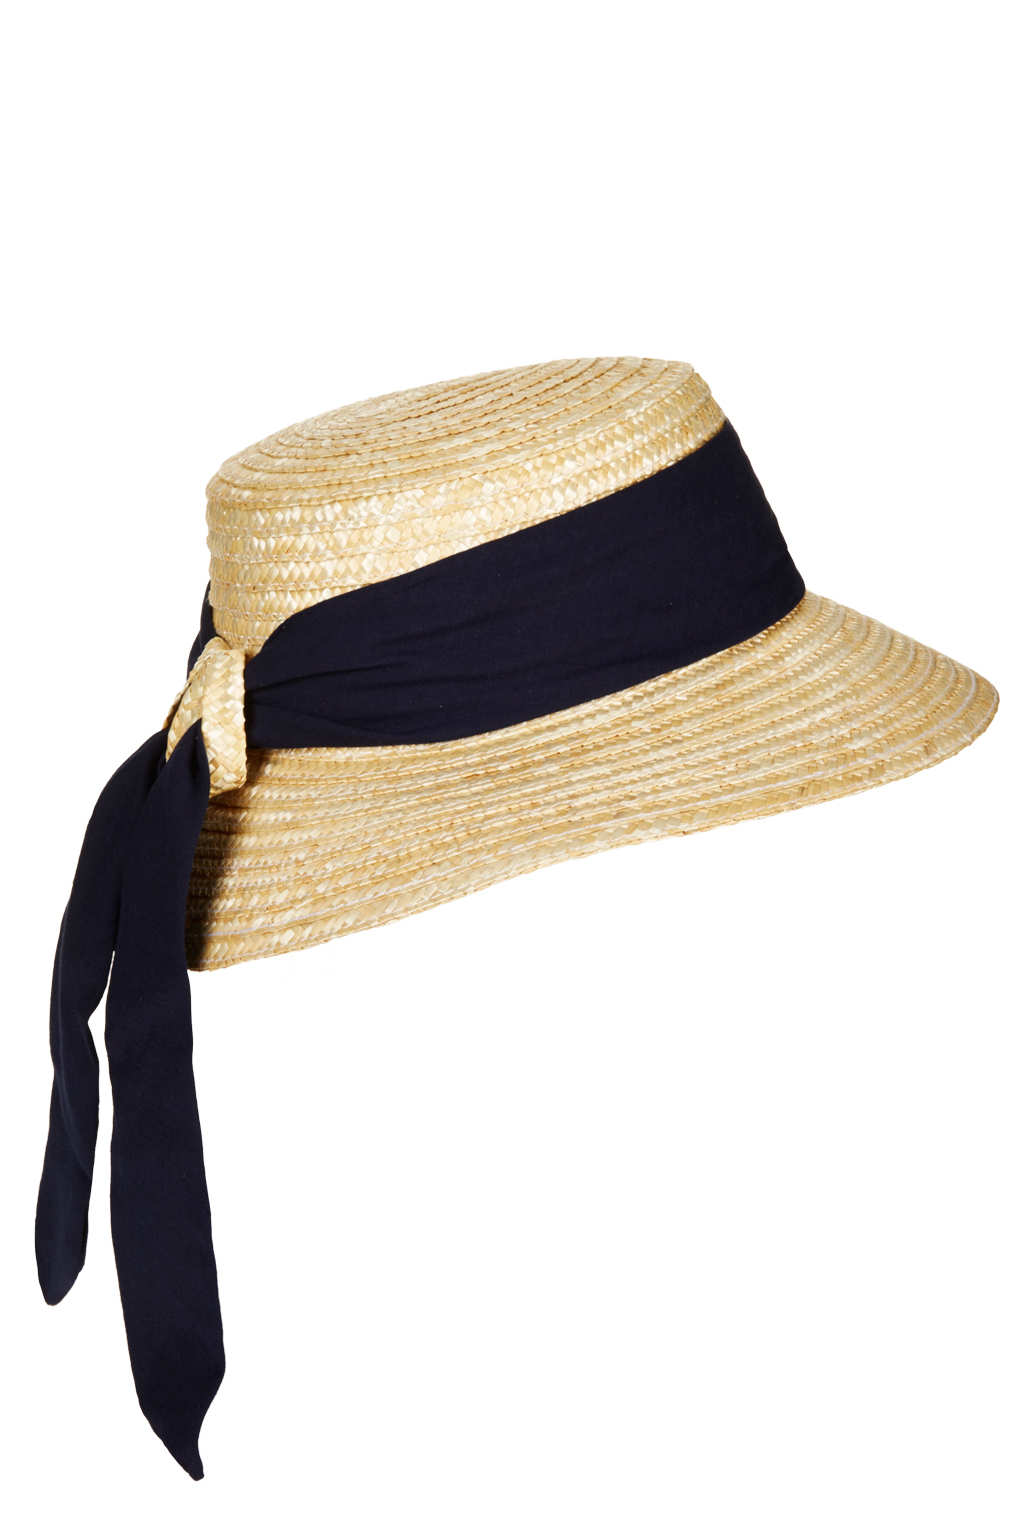 Lyst - TOPSHOP Structured Ribbon Boater Hat in Black beab9db69d2